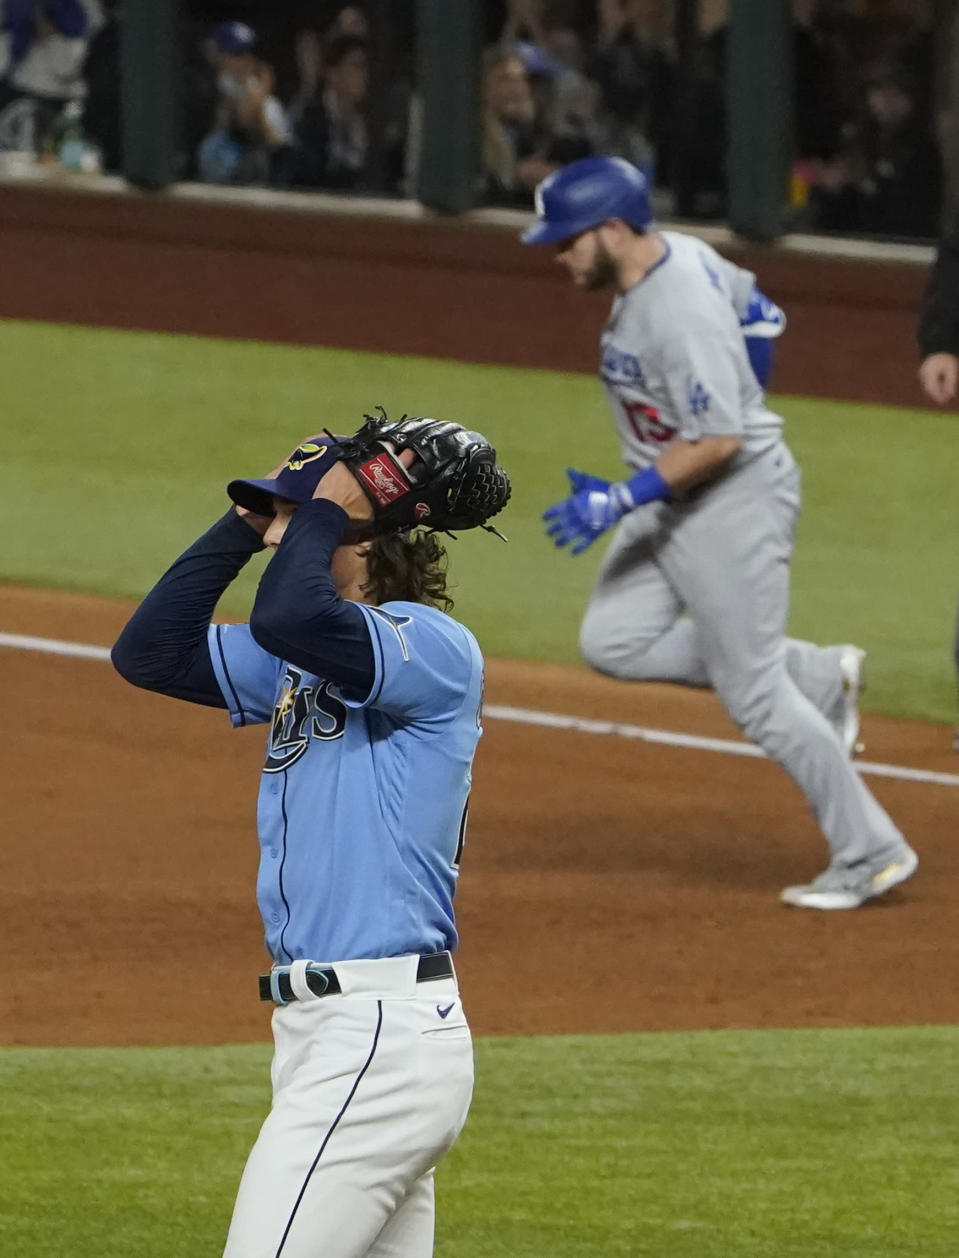 Los Angeles Dodgers first baseman Max Muncy celebrates a home run off Tampa Bay Rays starting pitcher Tyler Glasnow during the fifth inning in Game 5 of the baseball World Series Sunday, Oct. 25, 2020, in Arlington, Texas. (AP Photo/Tony Gutierrez)